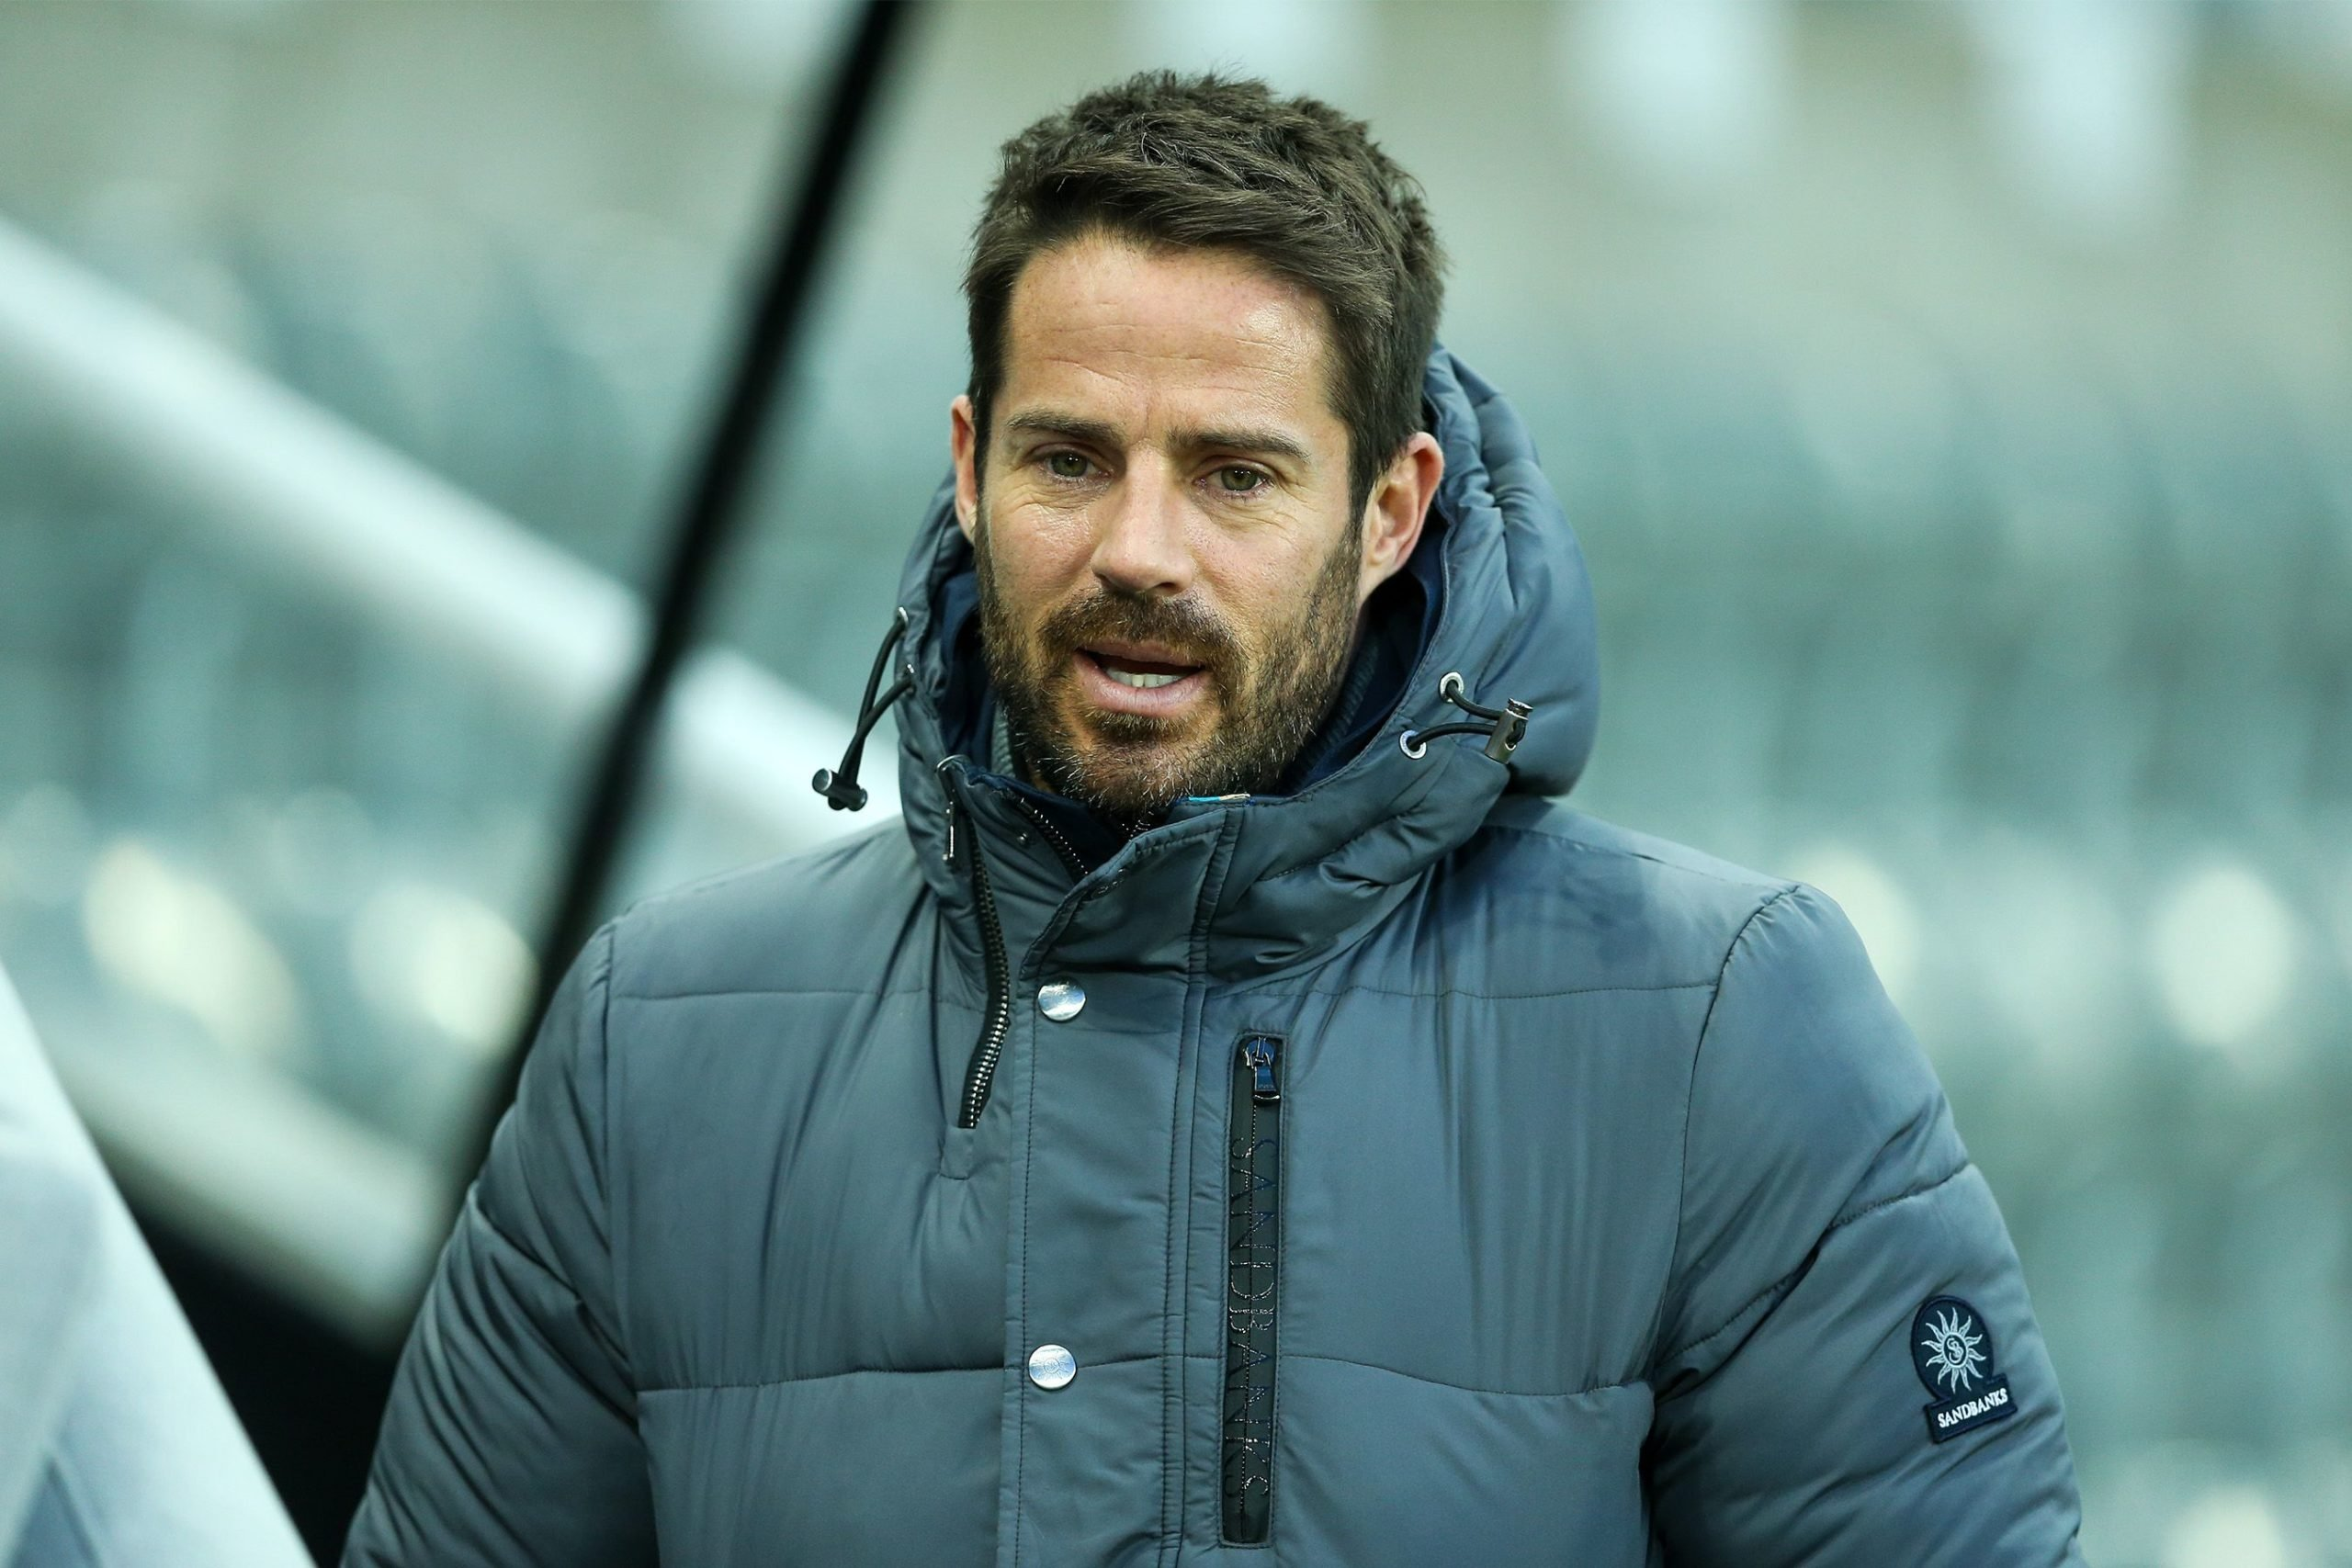 Jamie Redknapp celebrates son Charley's 16th birthday with embarrassing picture